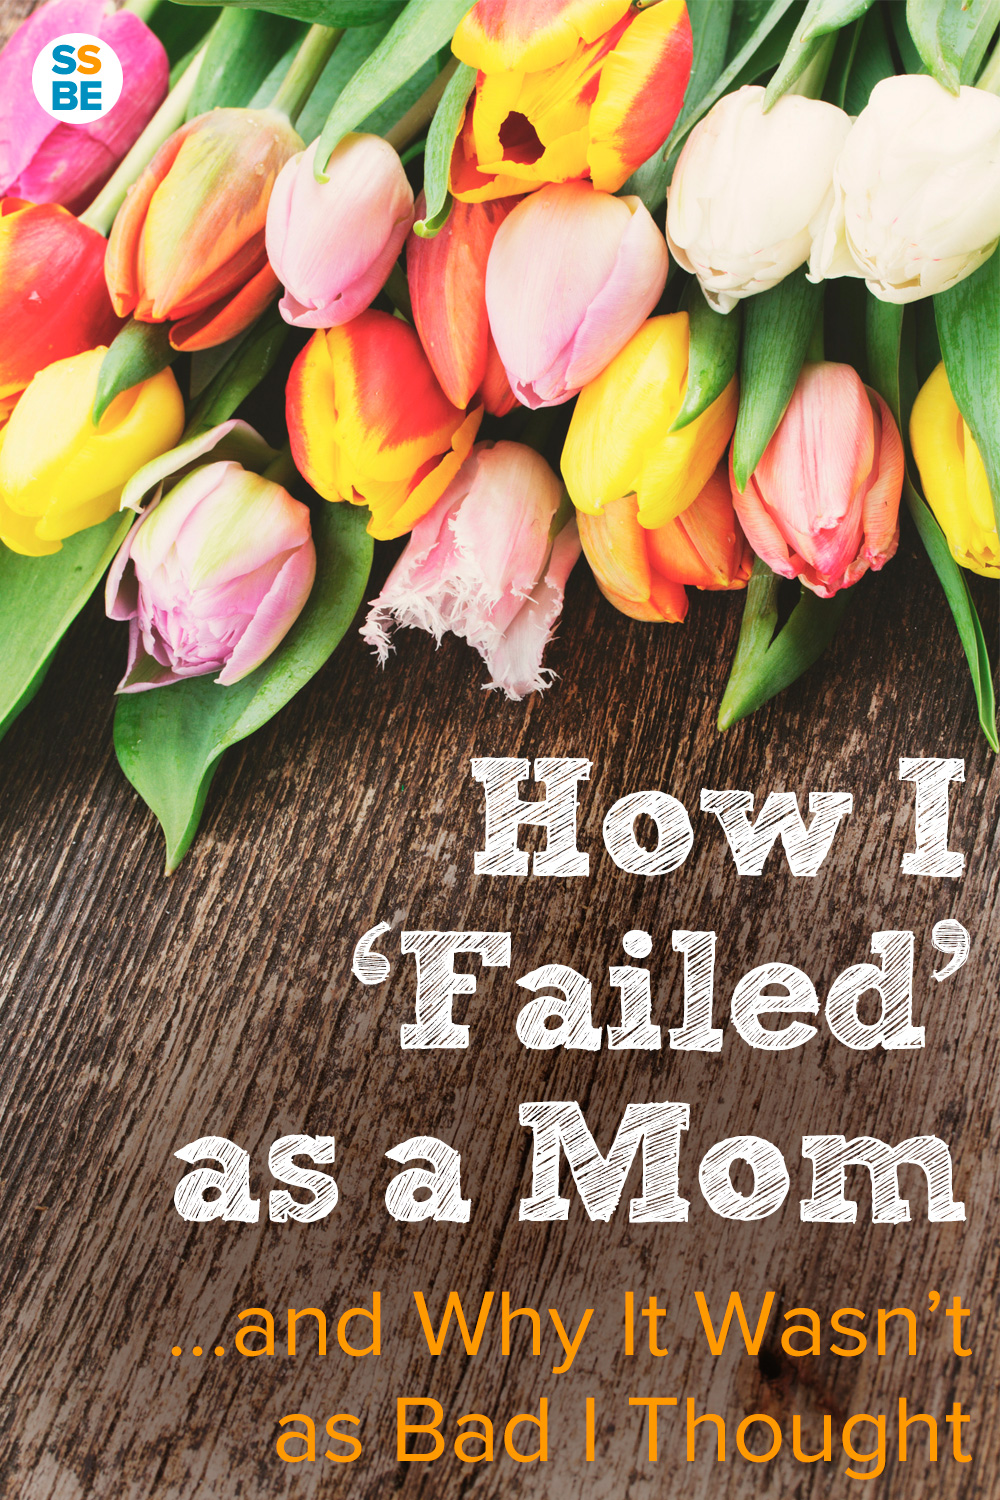 Do you stress out when you're feeling like a bad mother? Here's my story of how I felt terrible, then realized it's not as bad as I thought.